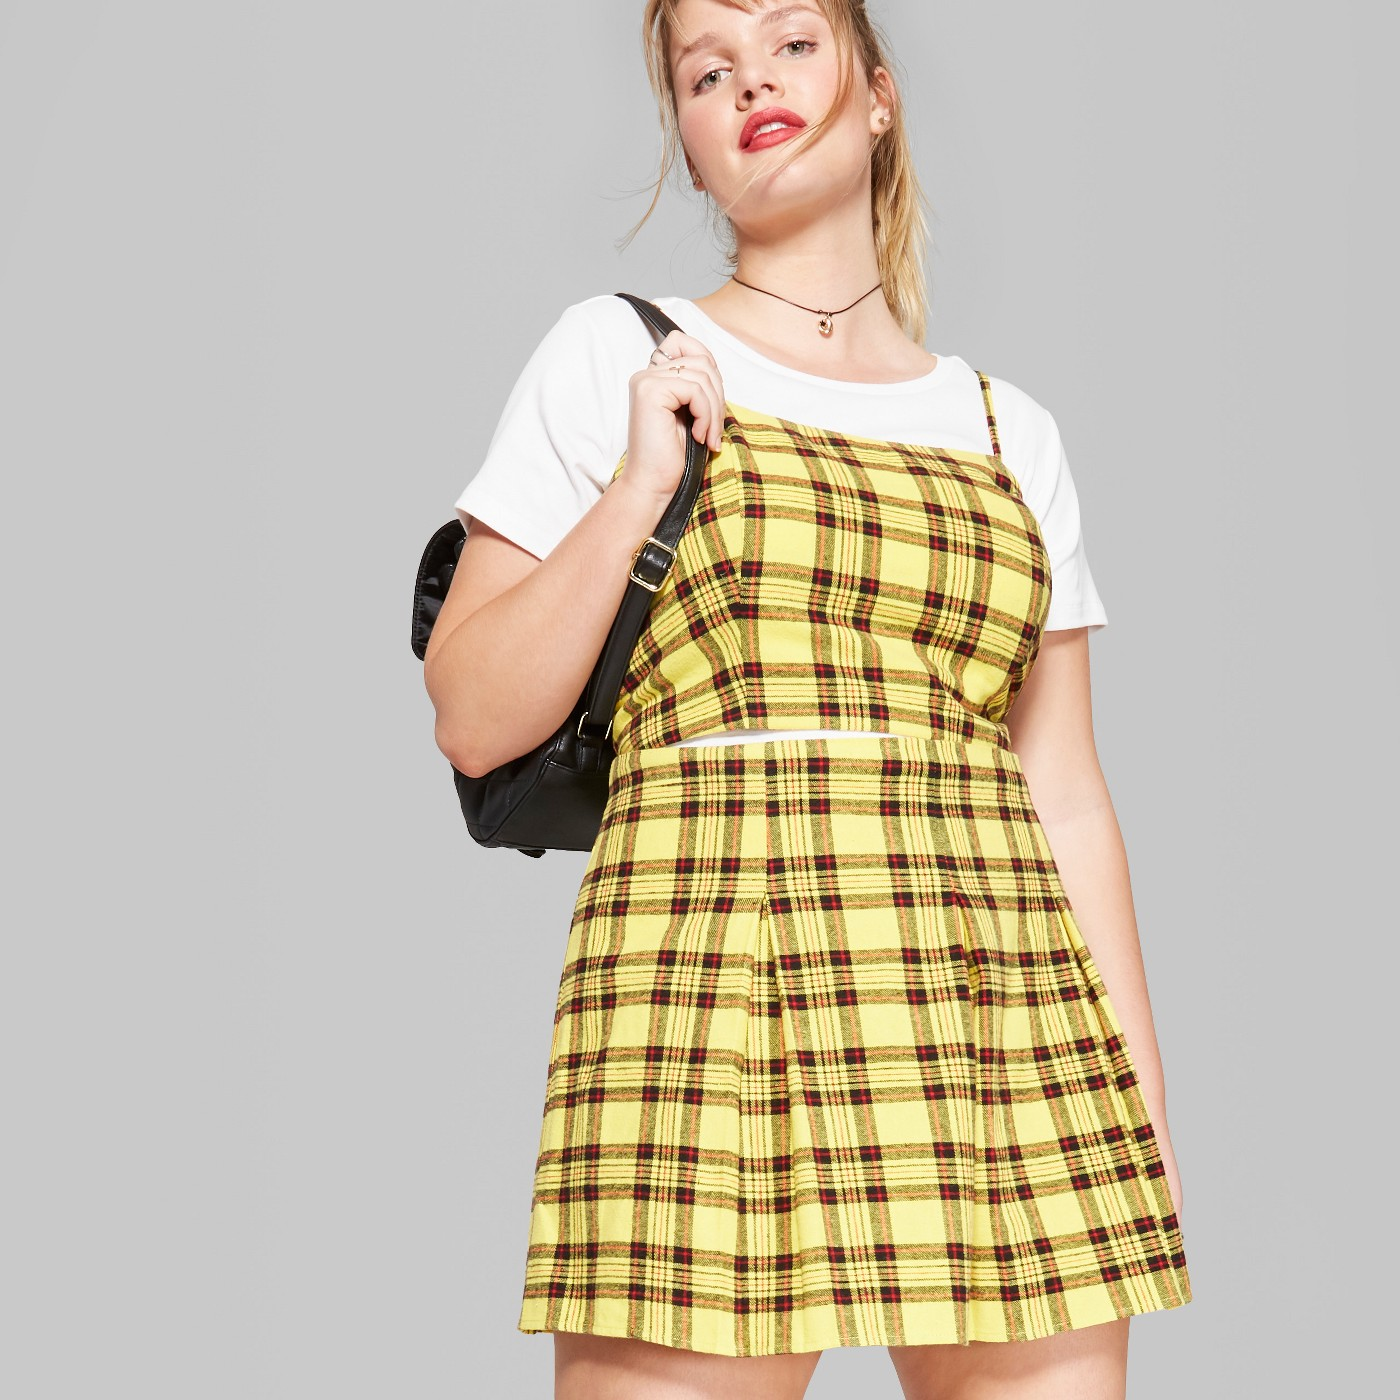 Hippie Halloween Costume Vsco.Plus Size Plaid Strappy Cropped Woven Top